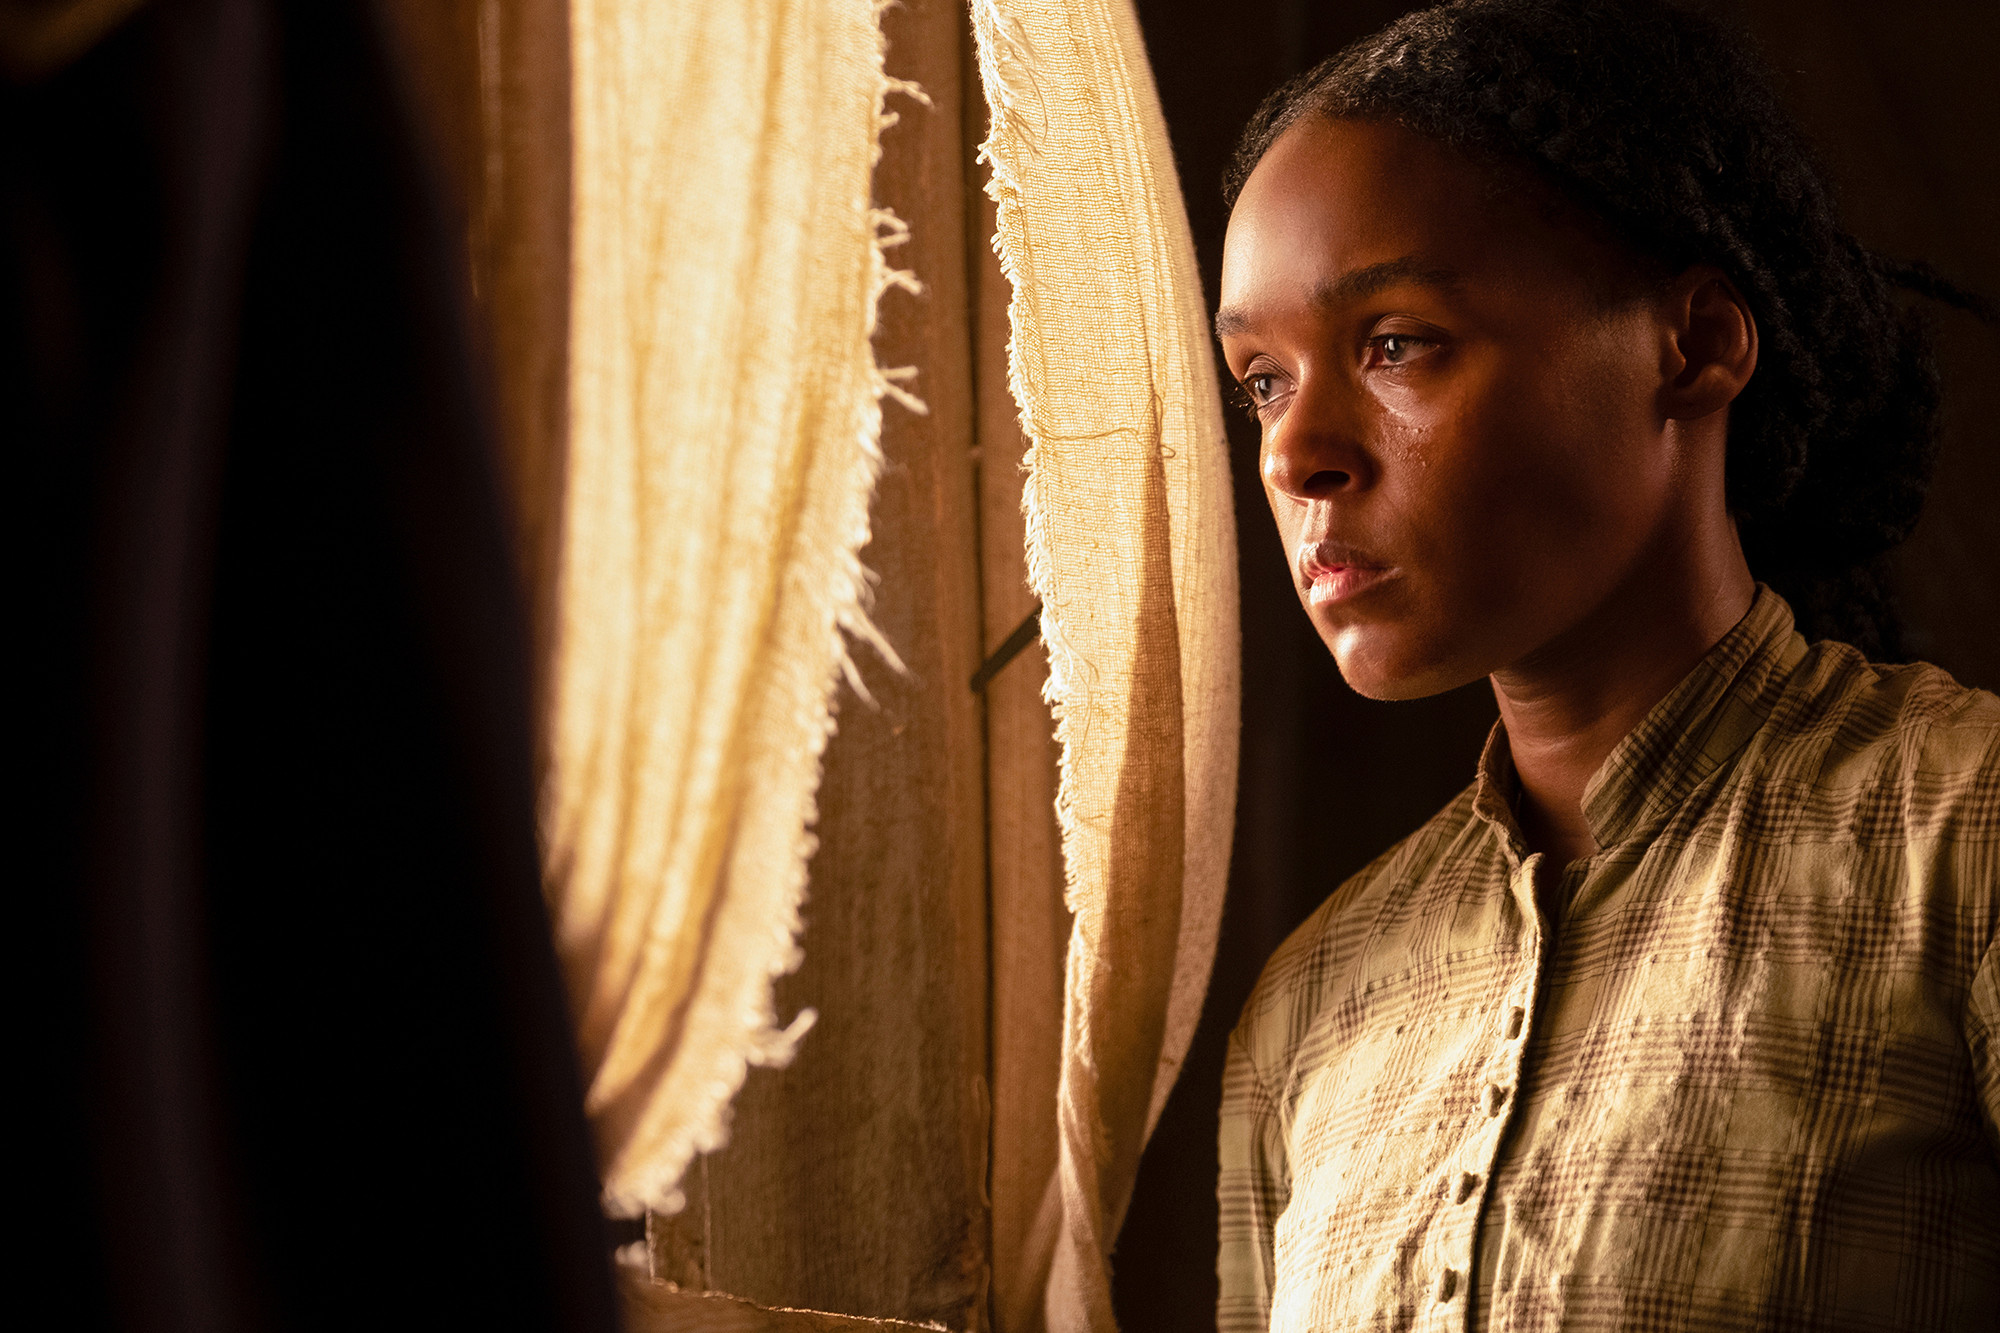 'Antebellum' review: Janelle Monáe captivates in breathless horror flick